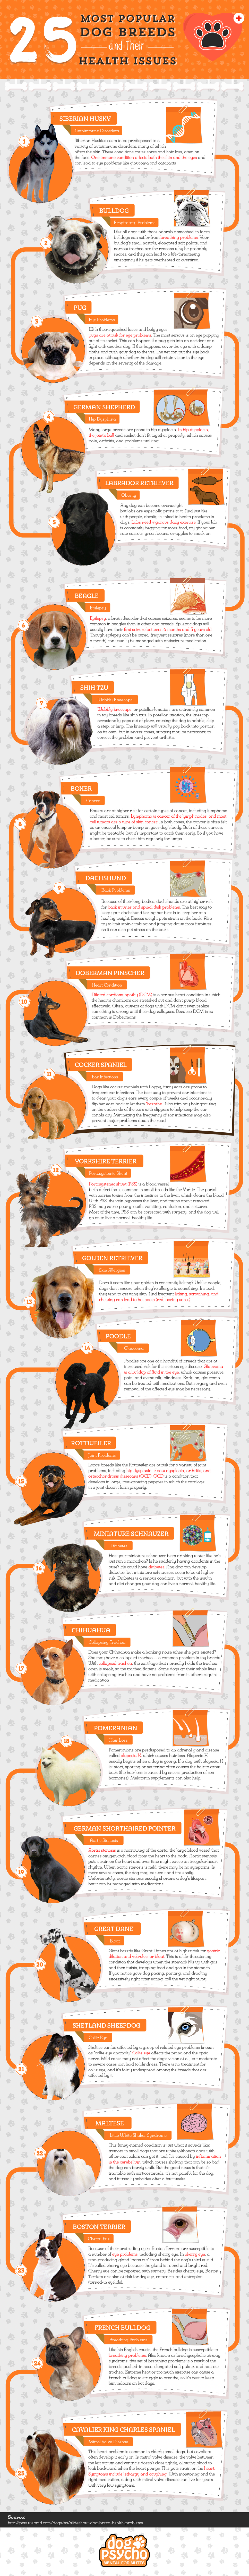 Dog Breeds And Their